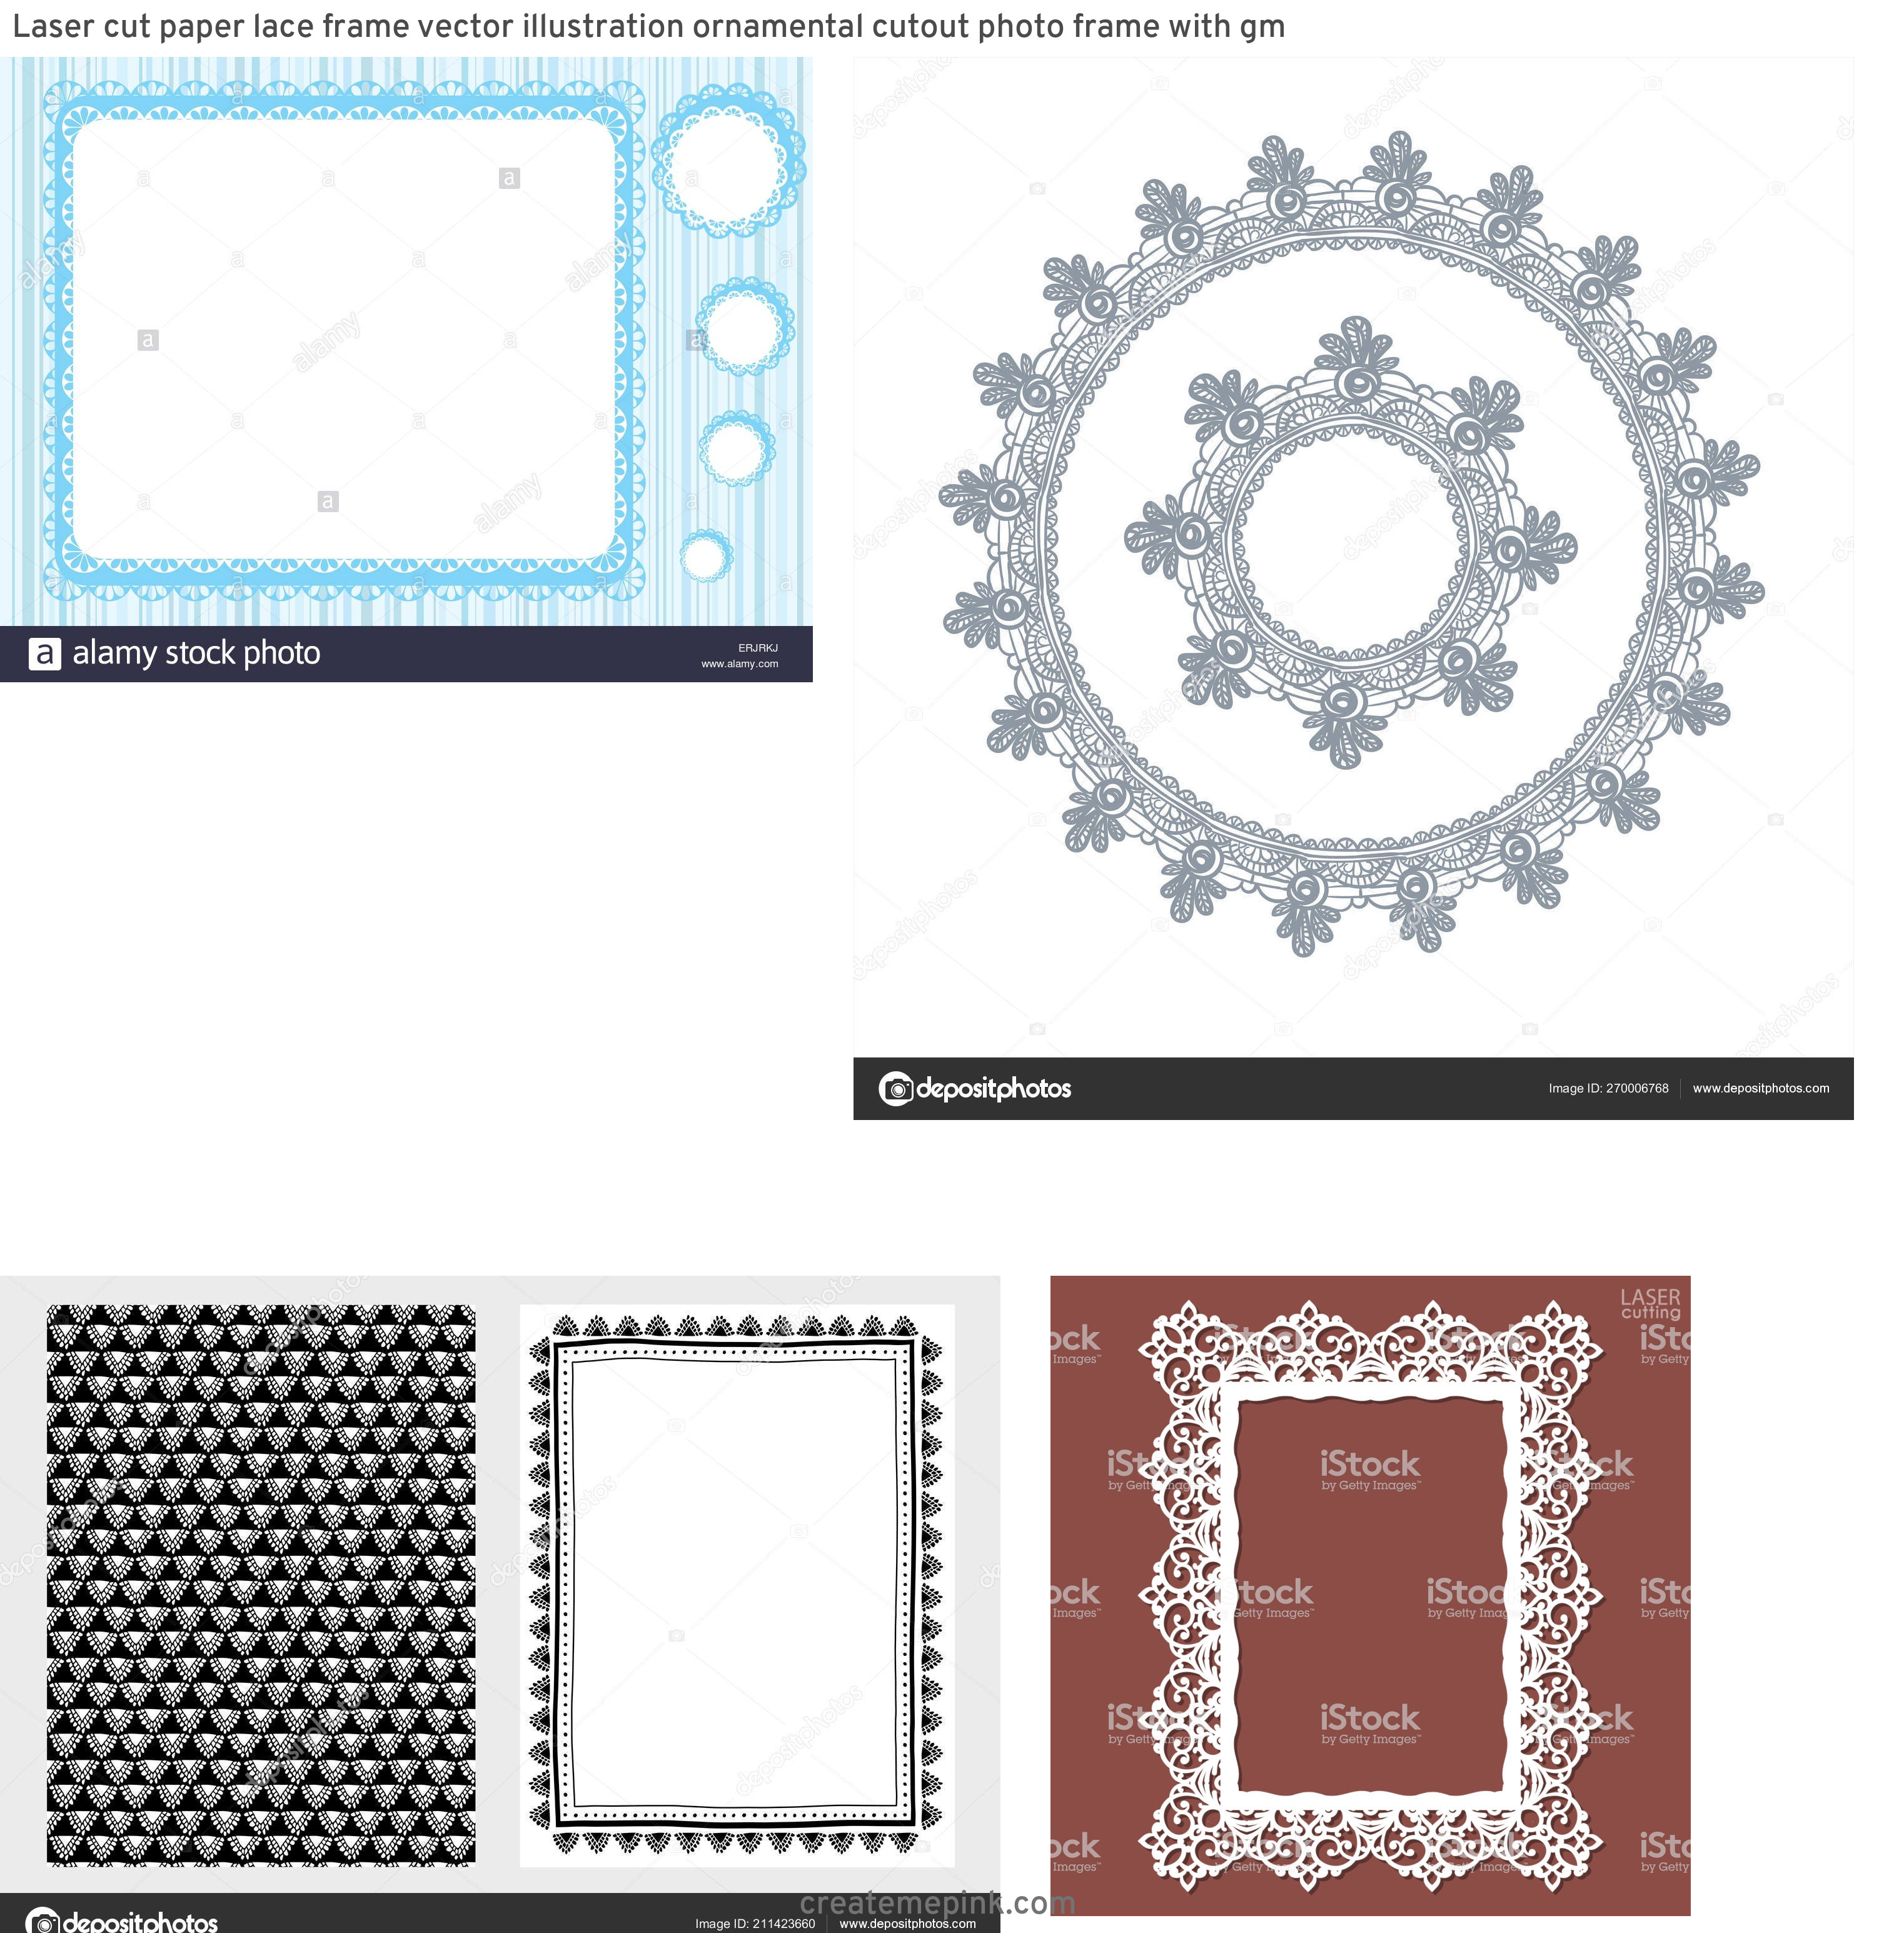 Simple Lace Frame Vector: Laser Cut Paper Lace Frame Vector Illustration Ornamental Cutout Photo Frame With Gm